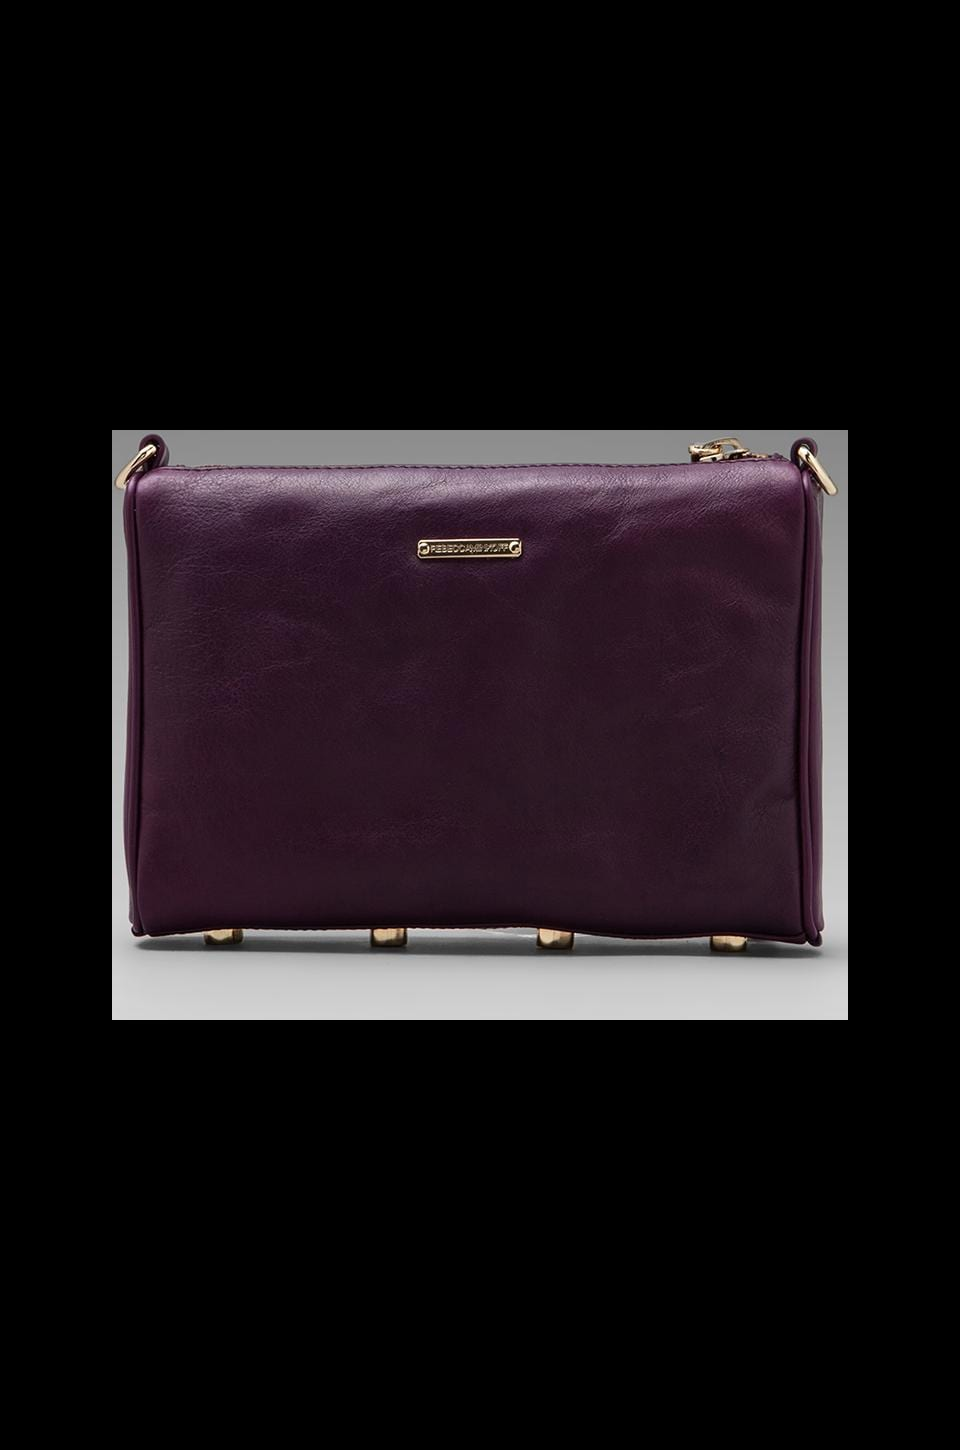 Rebecca Minkoff Mini 5 Zip Clutch in Plum